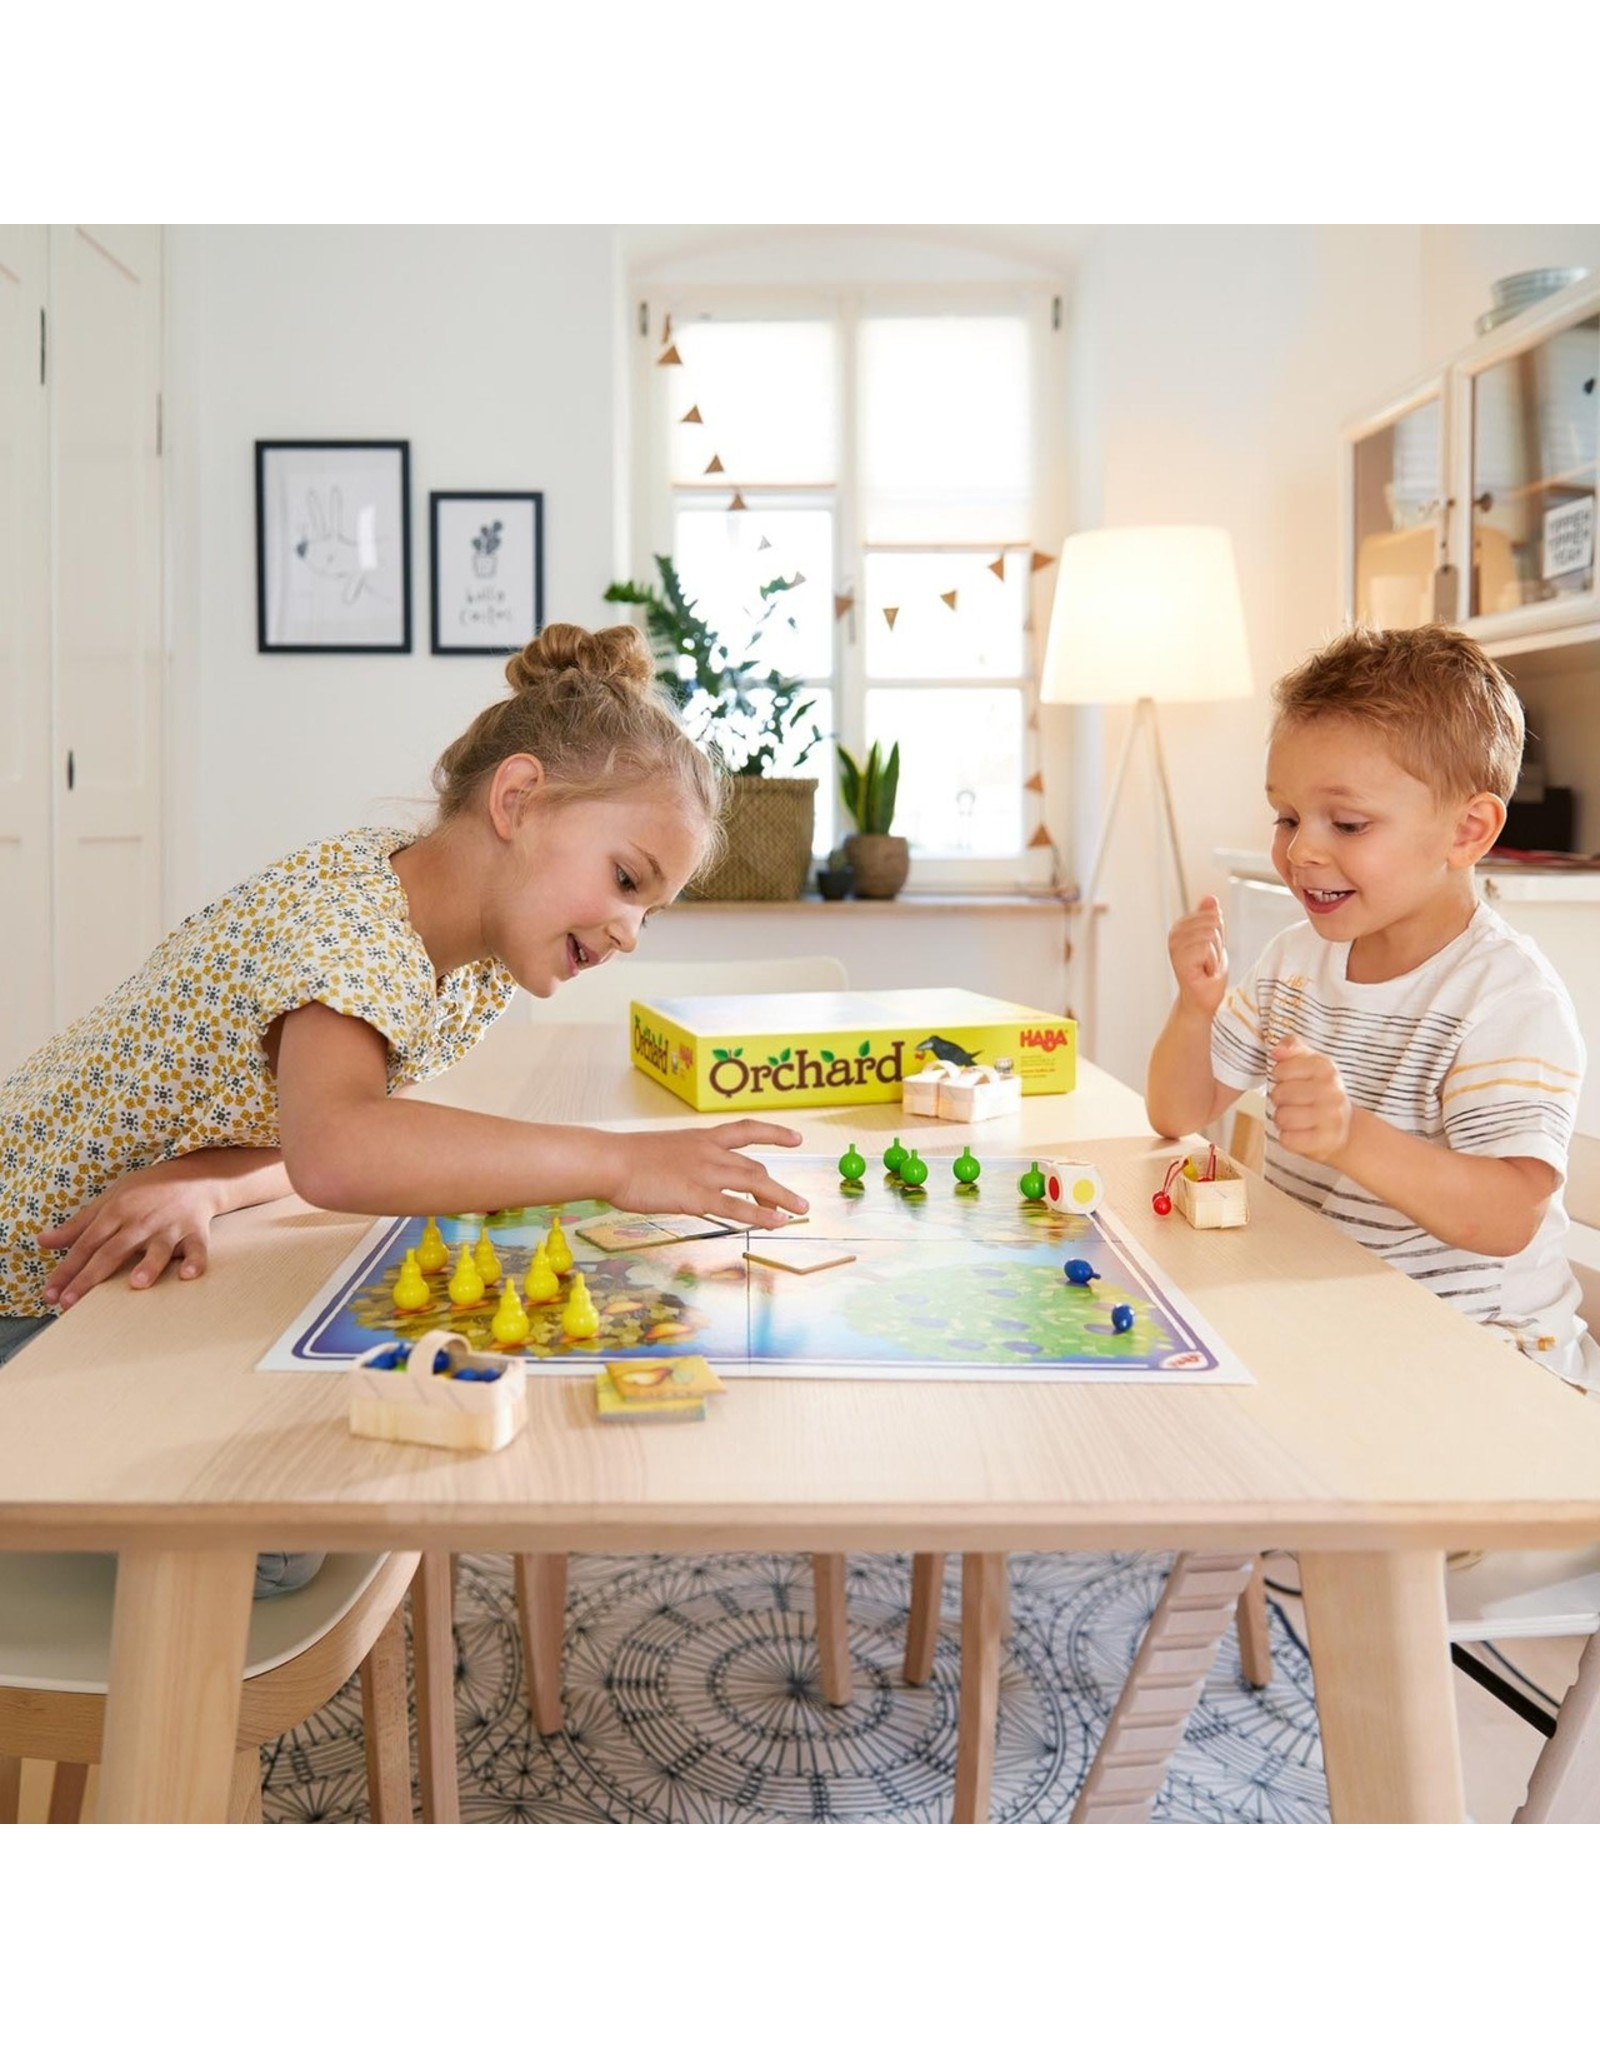 HABA The Orchard Game